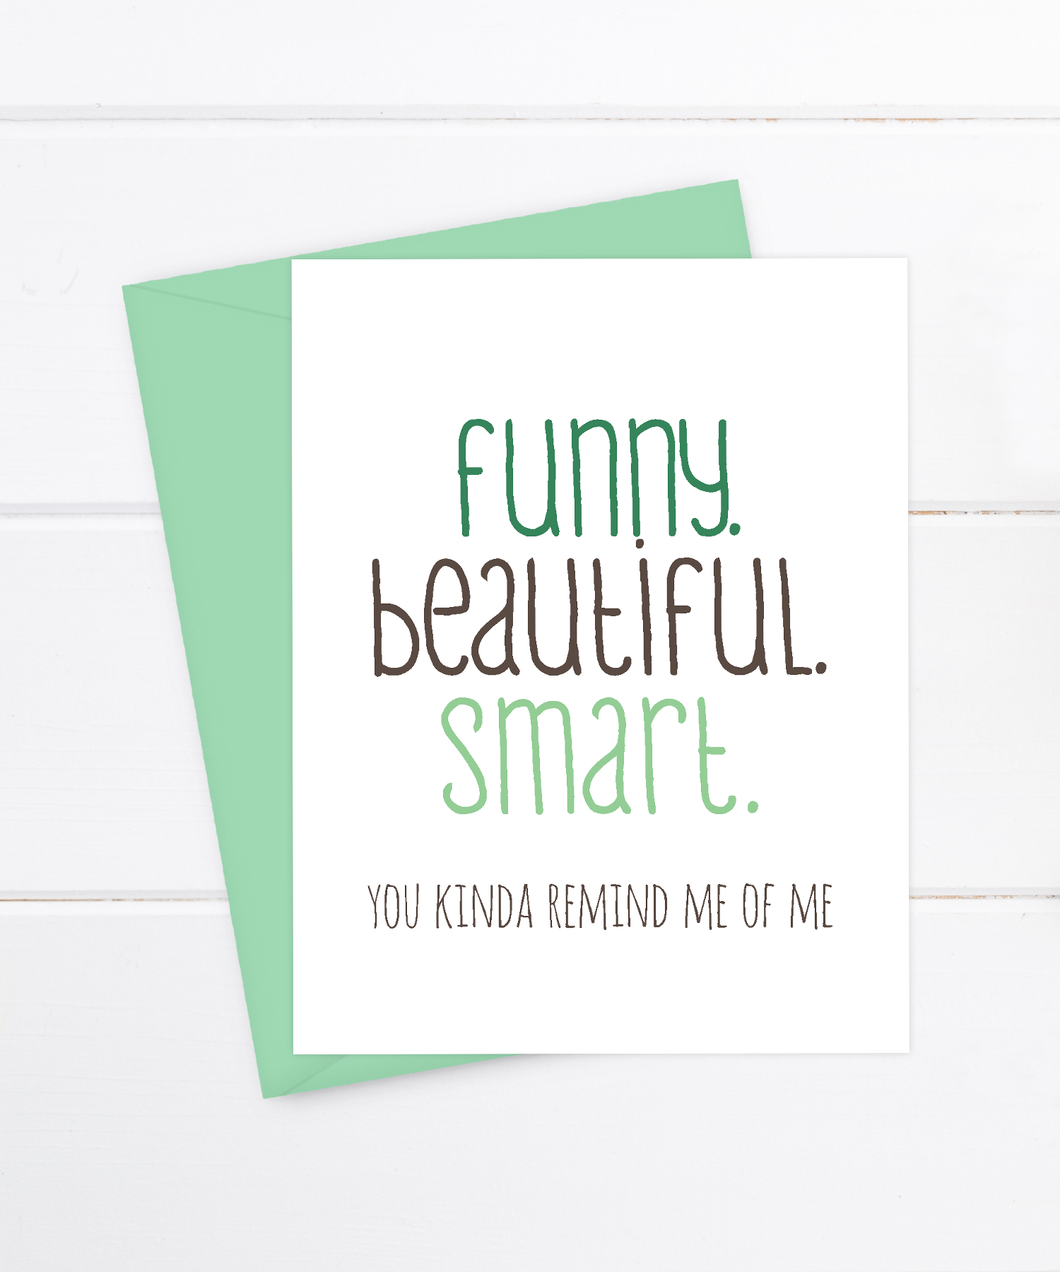 Funny Beautiful Smart. You kinda remind me of me.